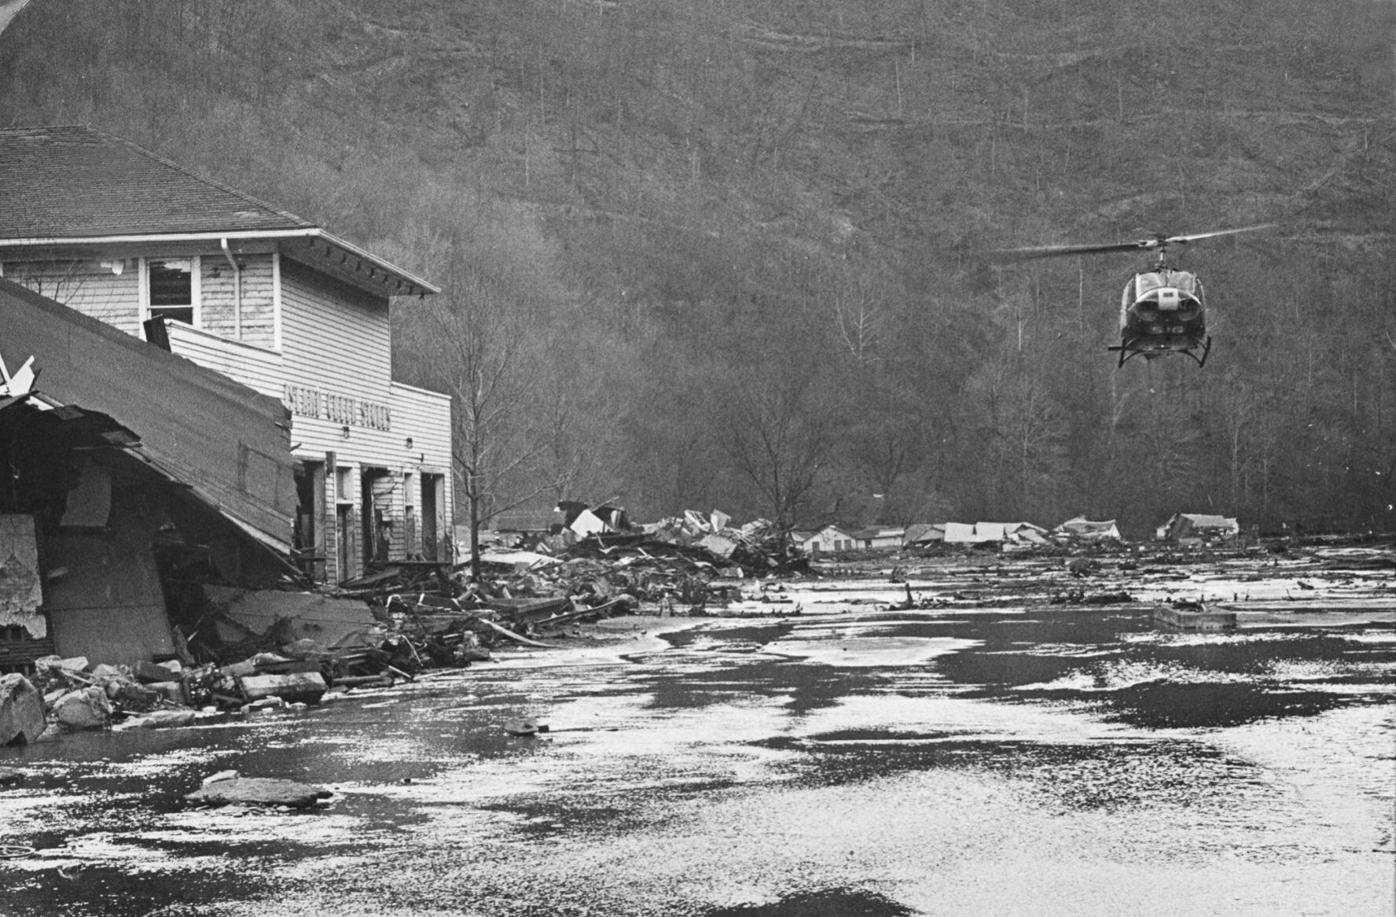 Helicopter above the devastation on Buffalo Creek